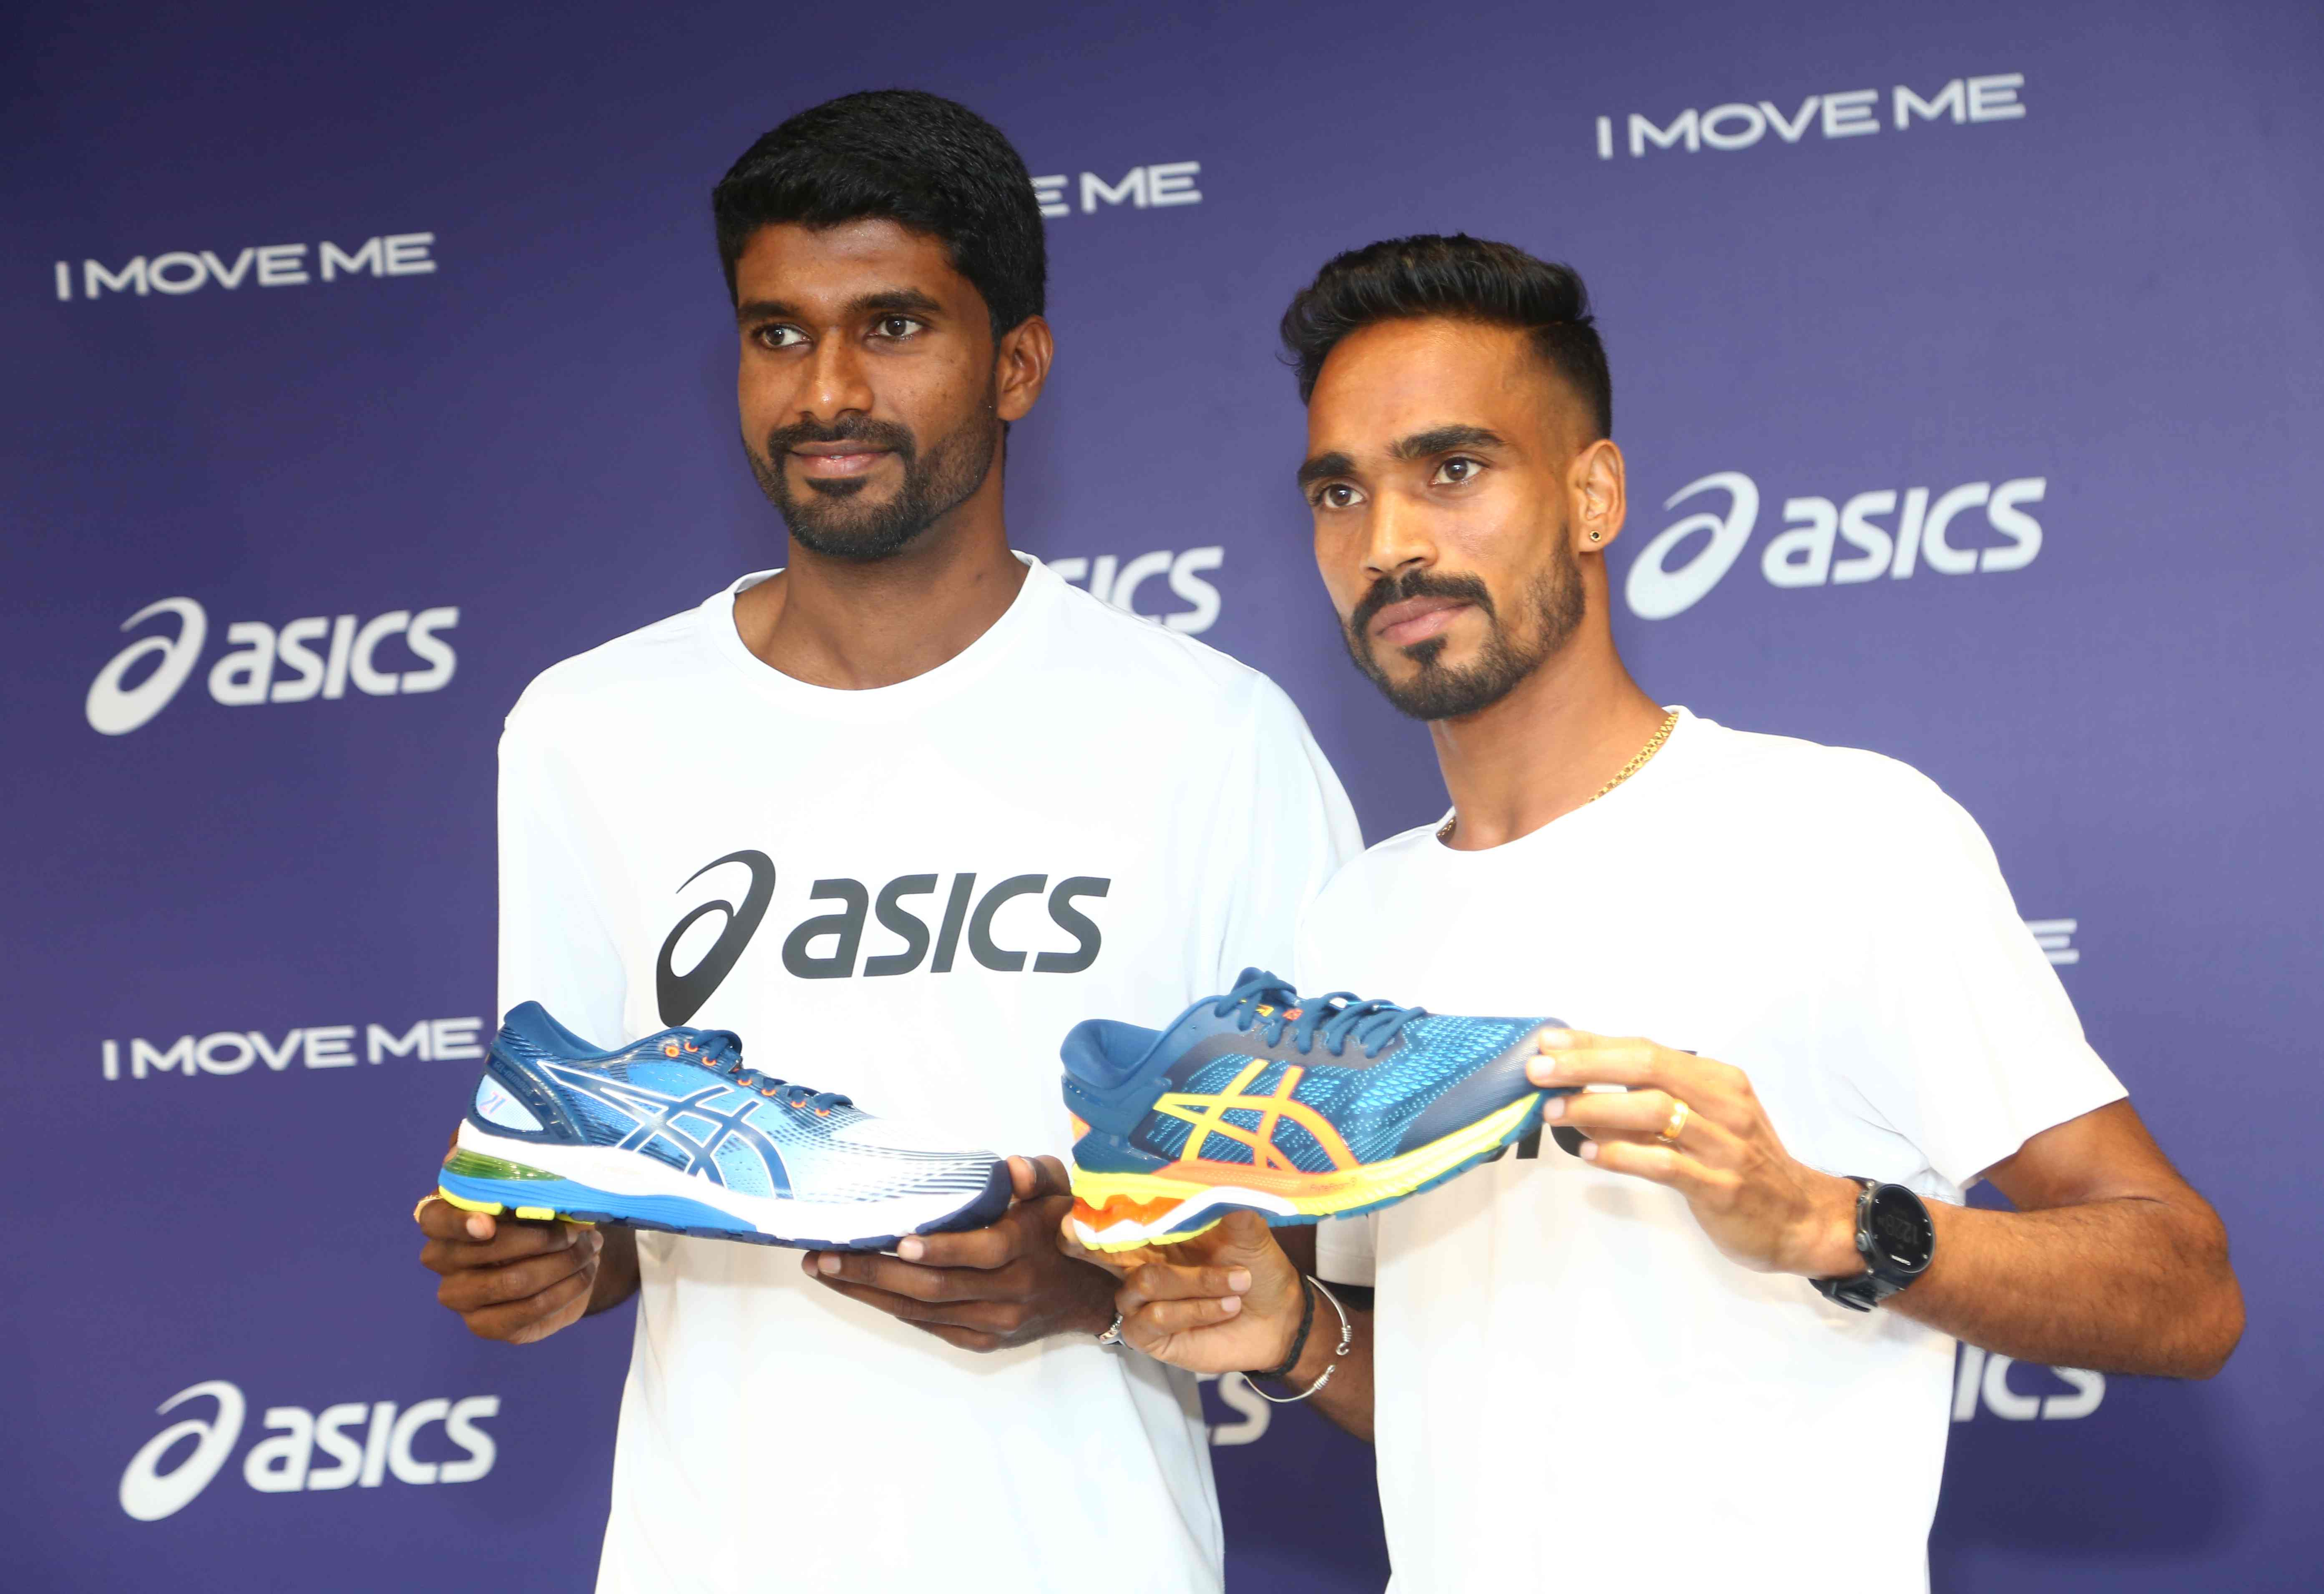 ASICS India announced Jinson Johnson (L) and T. Gopi (R) as their brand athletes at a glittering event in Bengaluru.